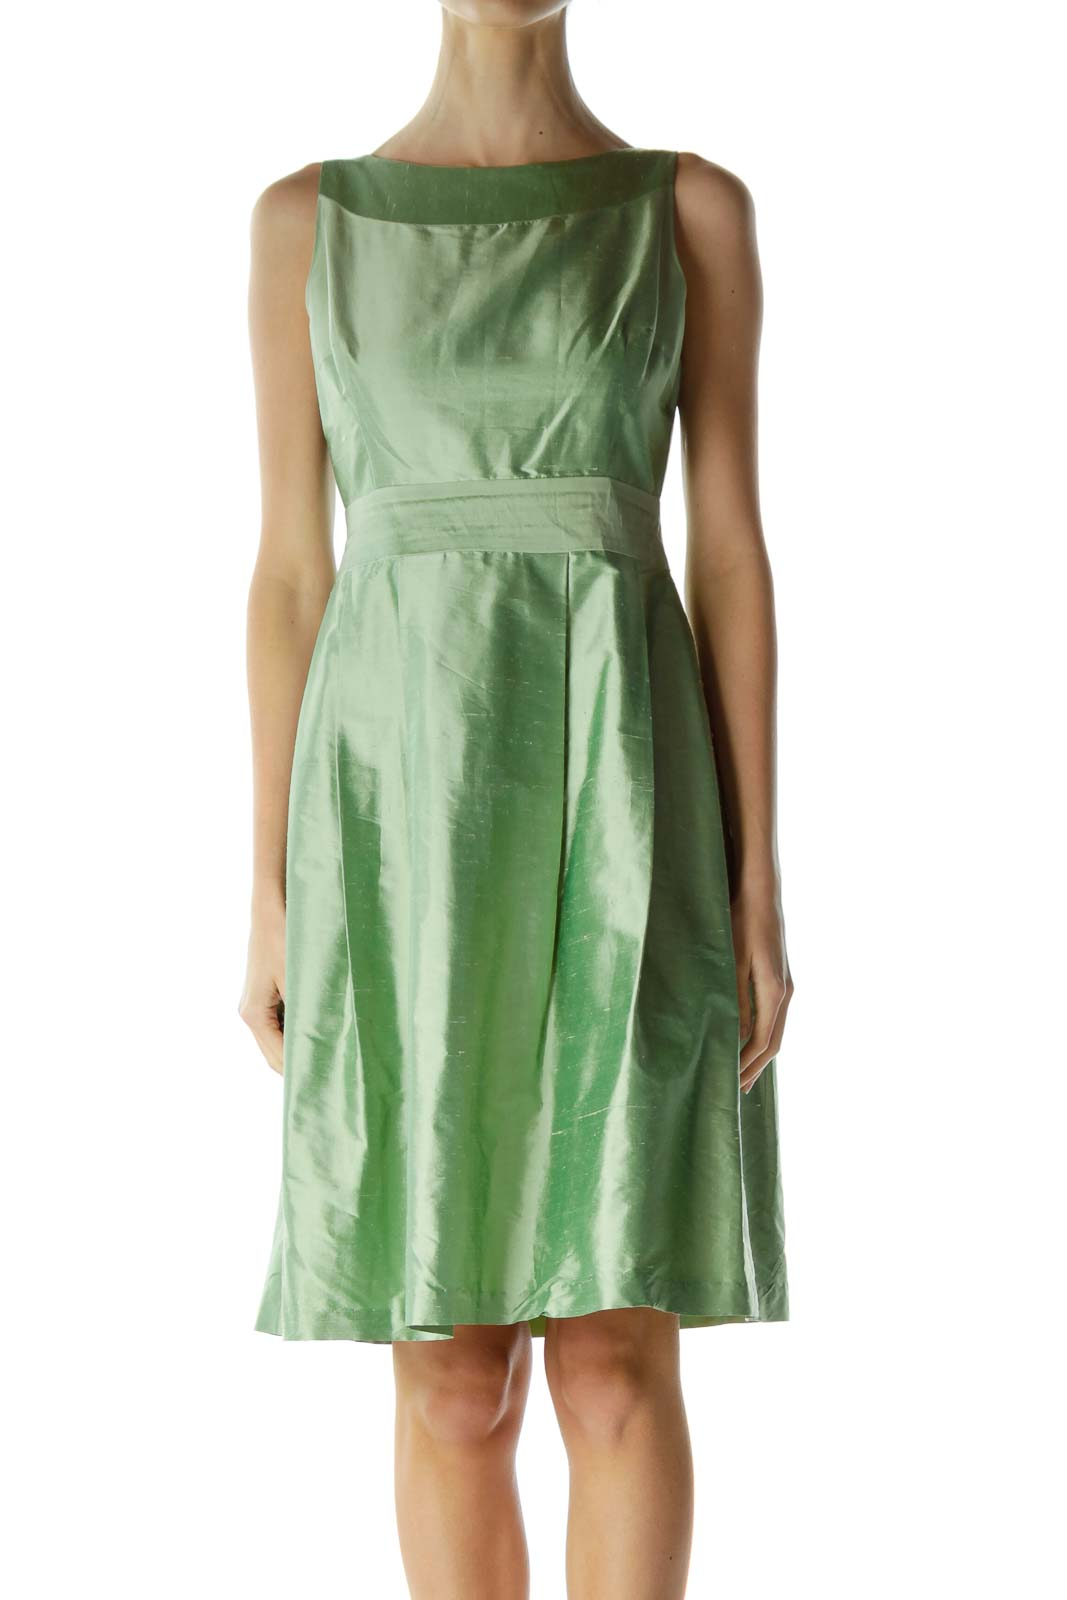 Green Boat Neck Sleeveless Cocktail Dress Front